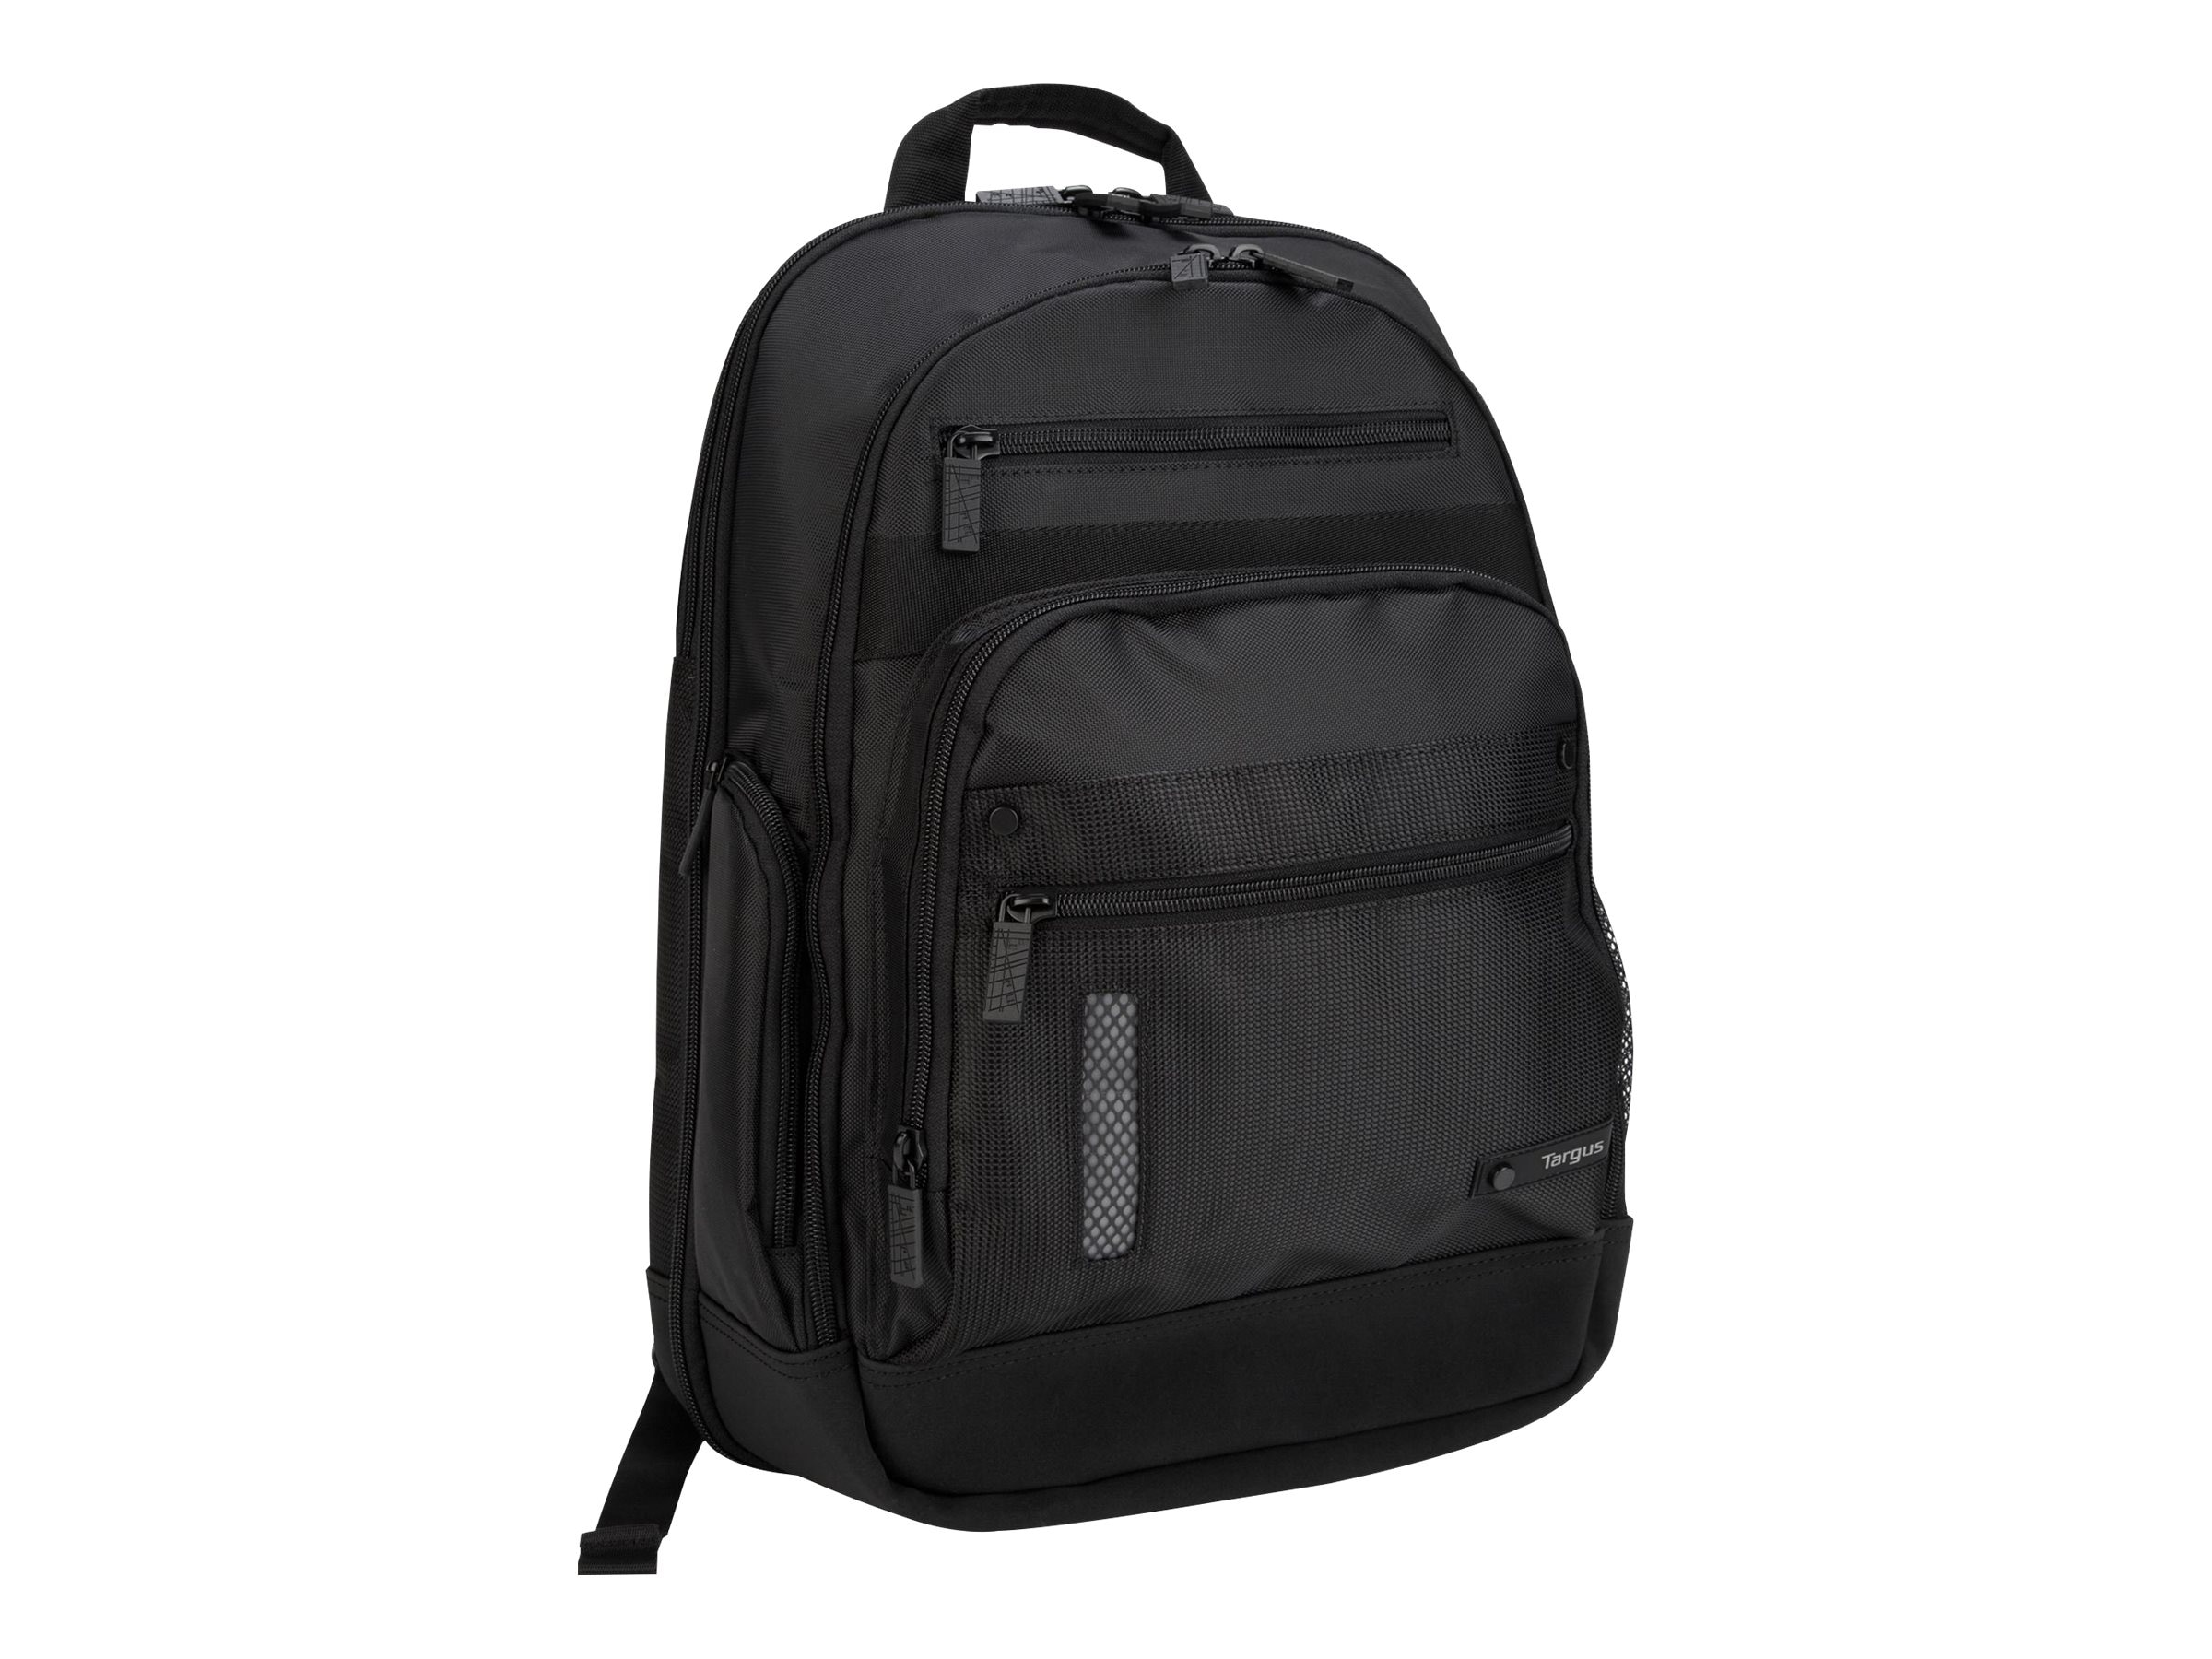 Targus Revolution Notebook Backpack, Fits up to 15.4 Notebook, TEB005US, 6743180, Carrying Cases - Notebook